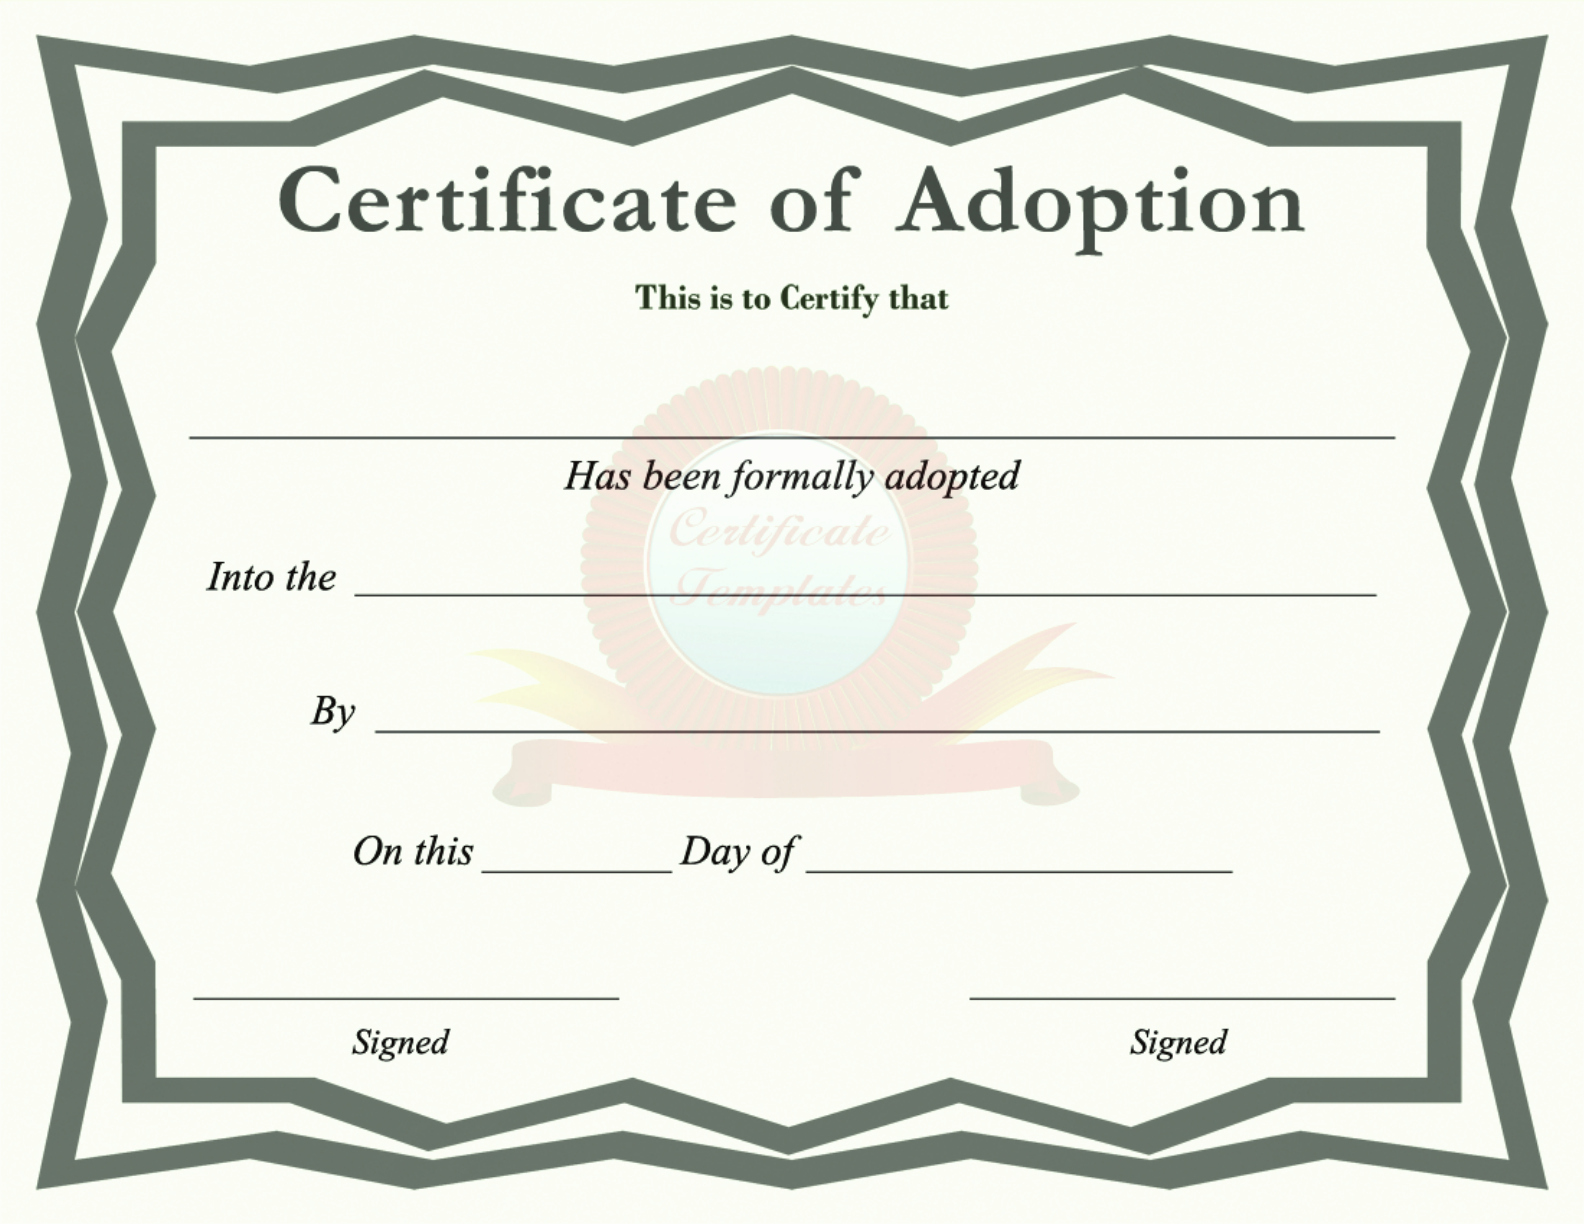 Puppy Adoption Certificate Template Beautiful Free Certificate Of Adoption Pdf 5105kb